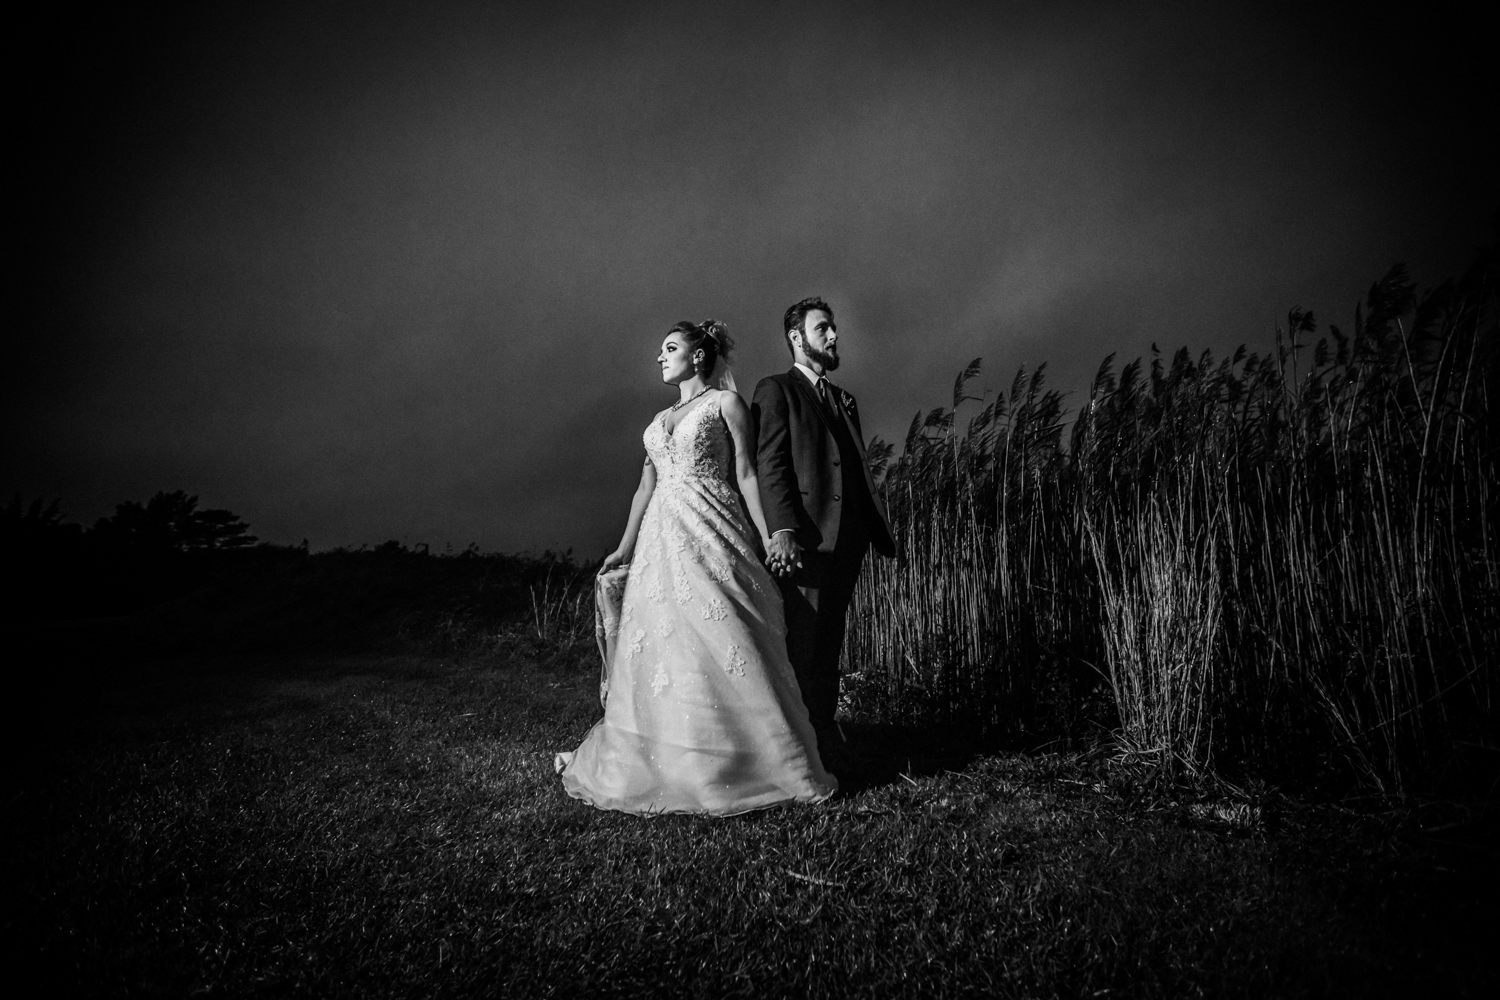 Seaview-Country-Club-Wedding-Jenna-Lynn-Photography-Sam&Kyle-Bride&GroomBW-46.jpg